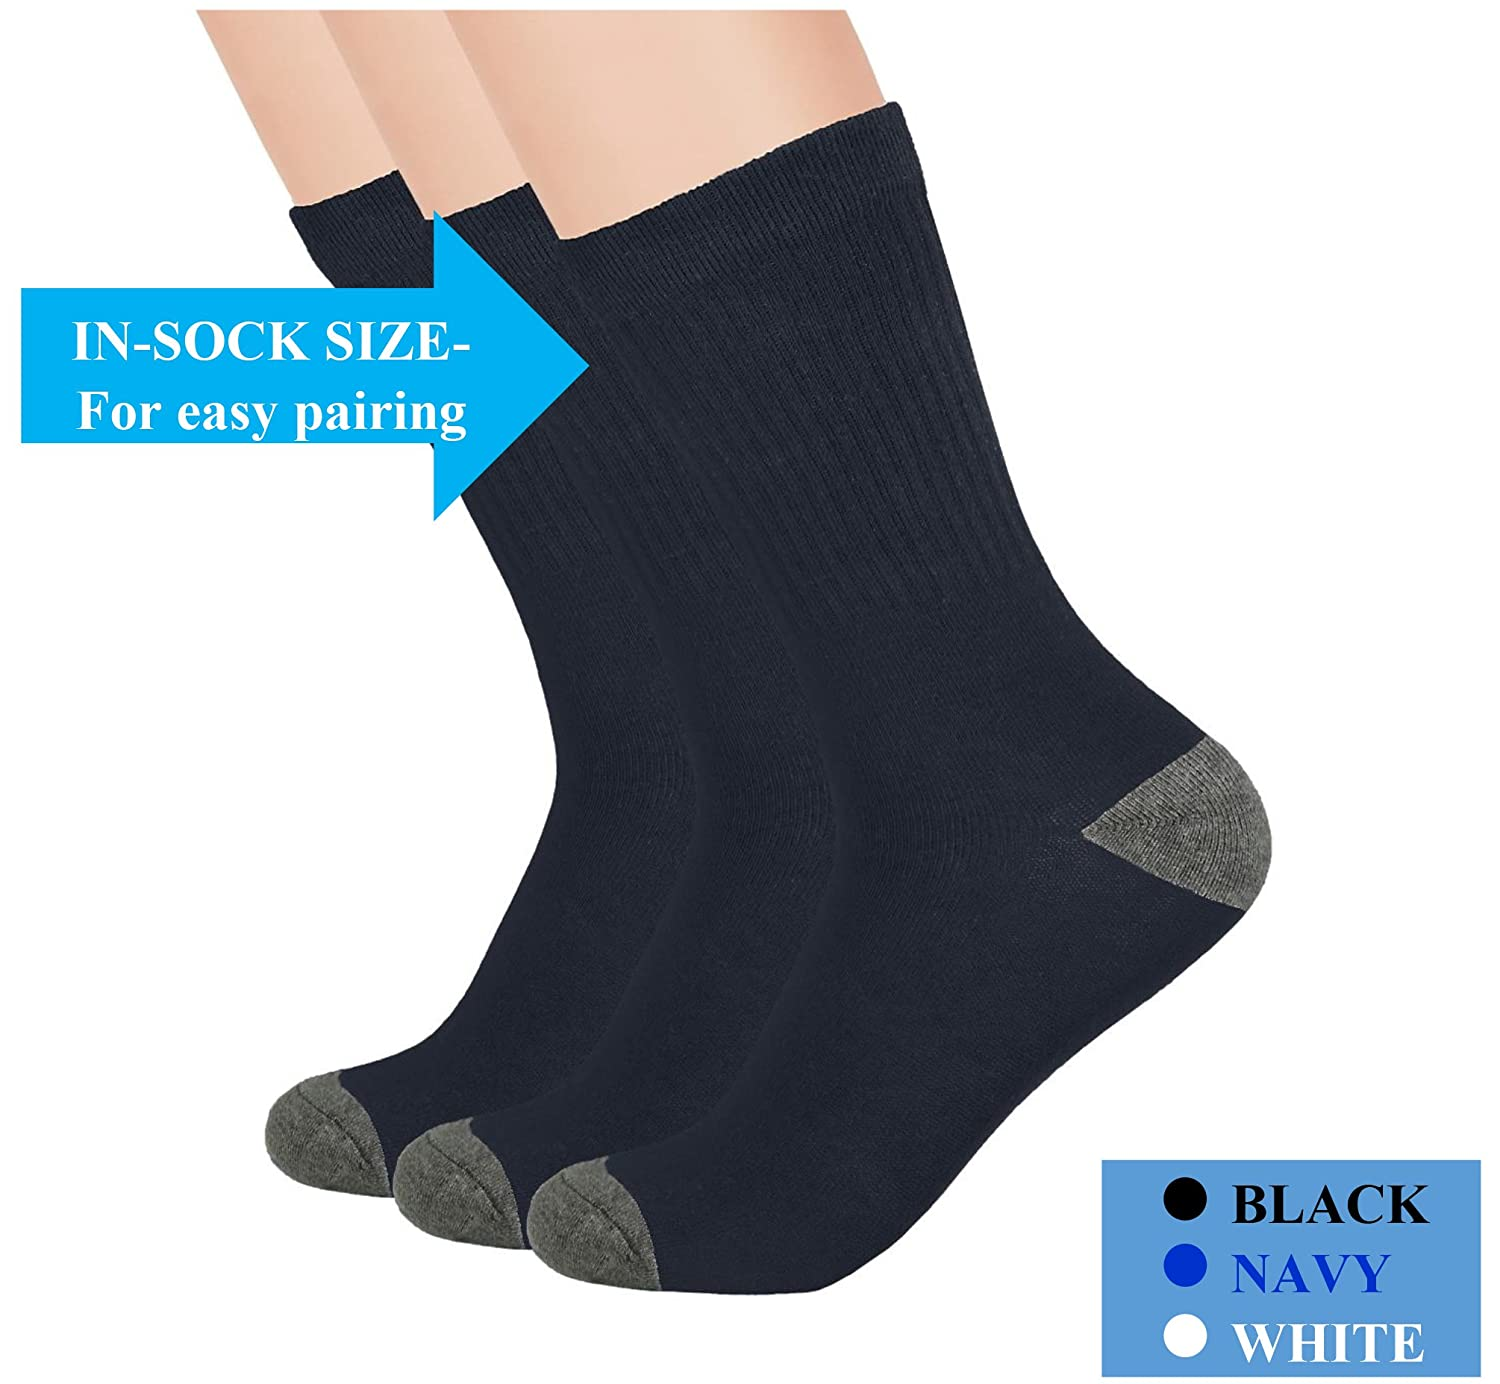 Boys Crew Socks - Boys Athletic Socks - Ribbed, Breathable, Cushioned - 3 and 6 Pack - by Topfit